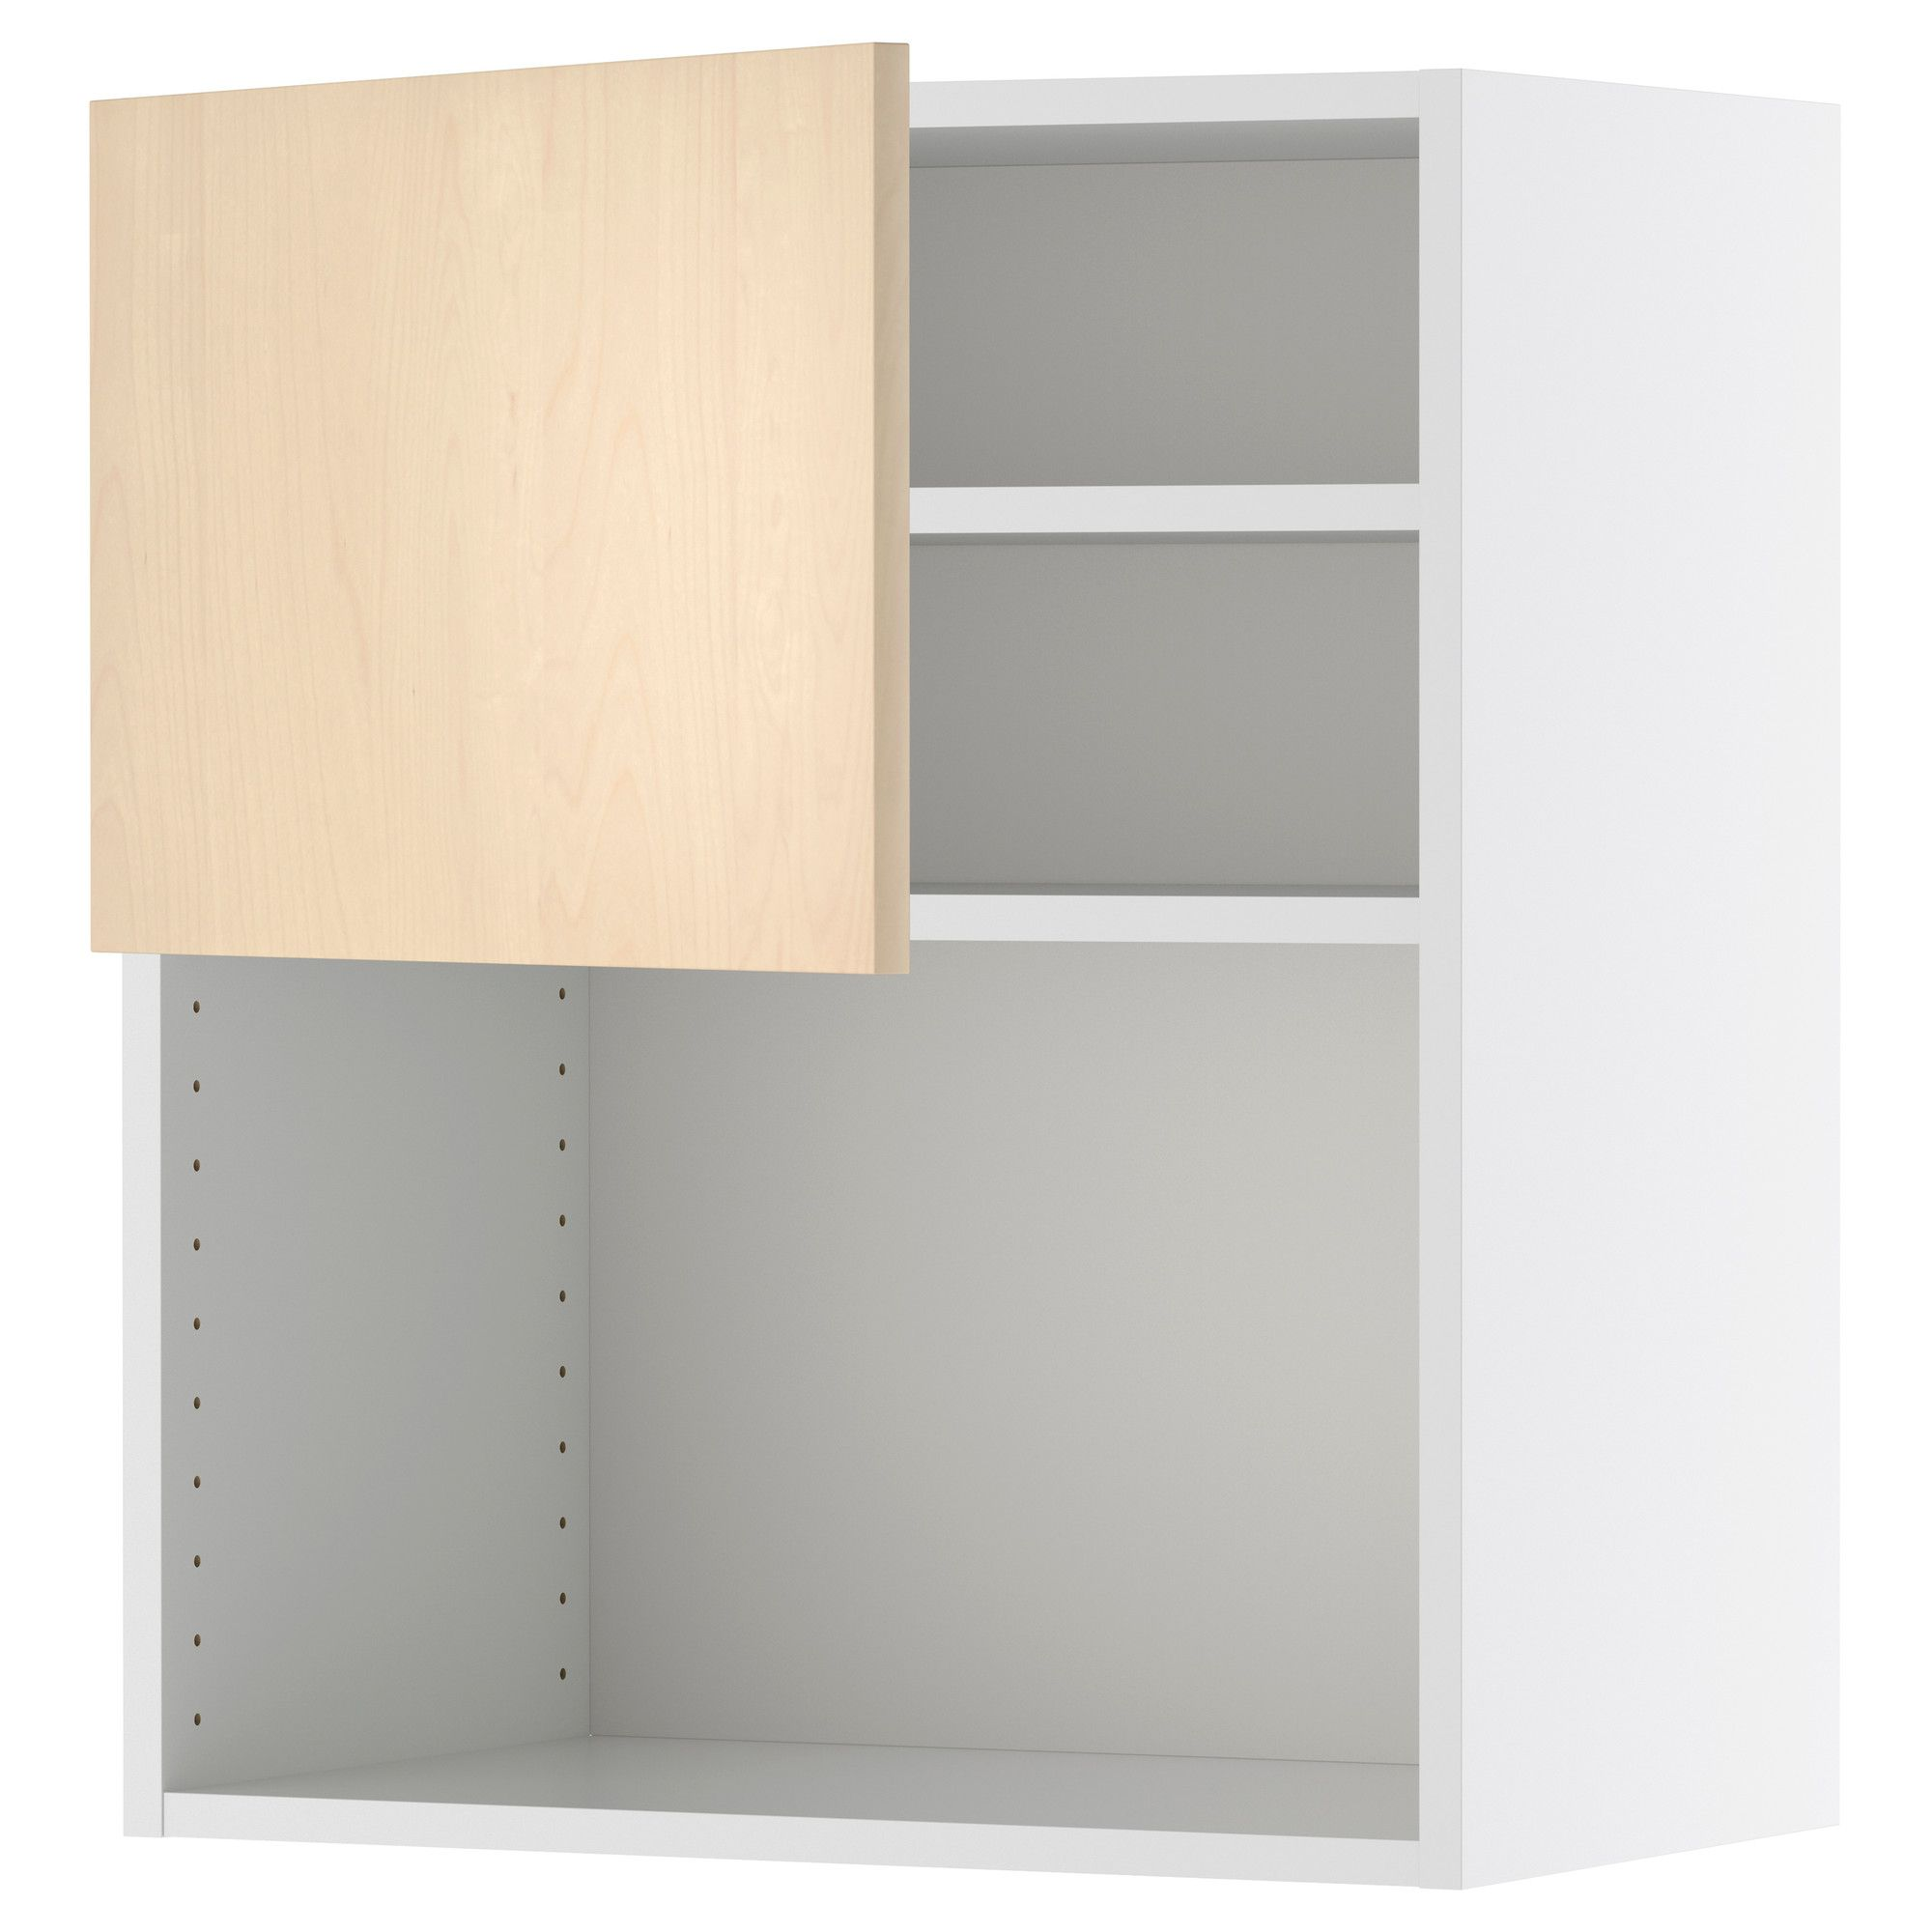 Comment Fabriquer Ilot Central Cuisine ~ Faktum Wall Cabinet For Microwave Oven Nexus Birch Veneer 60×70